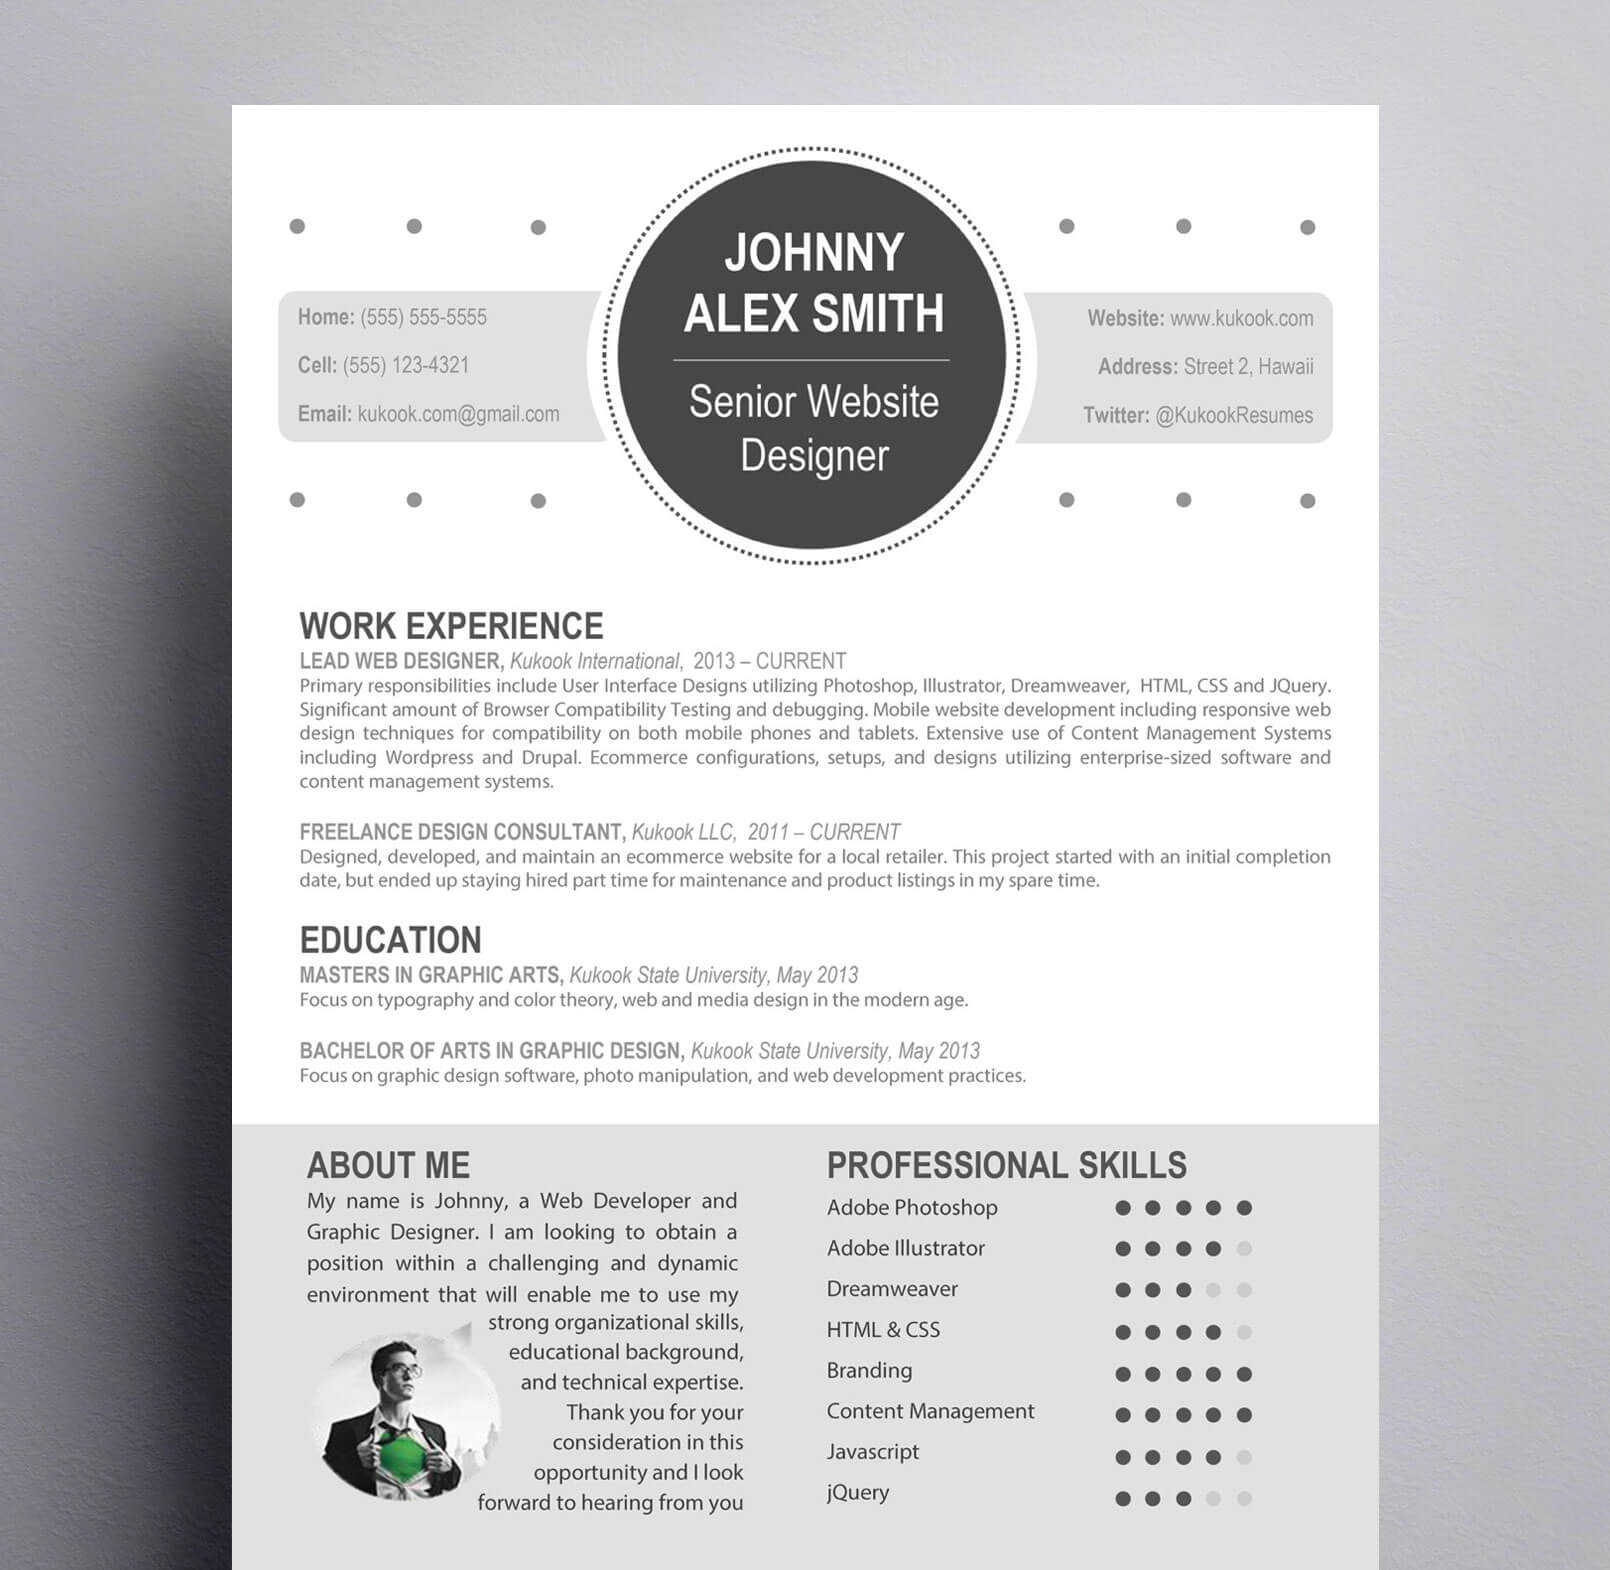 Modern Resume Template for Creative Careers : Kukook